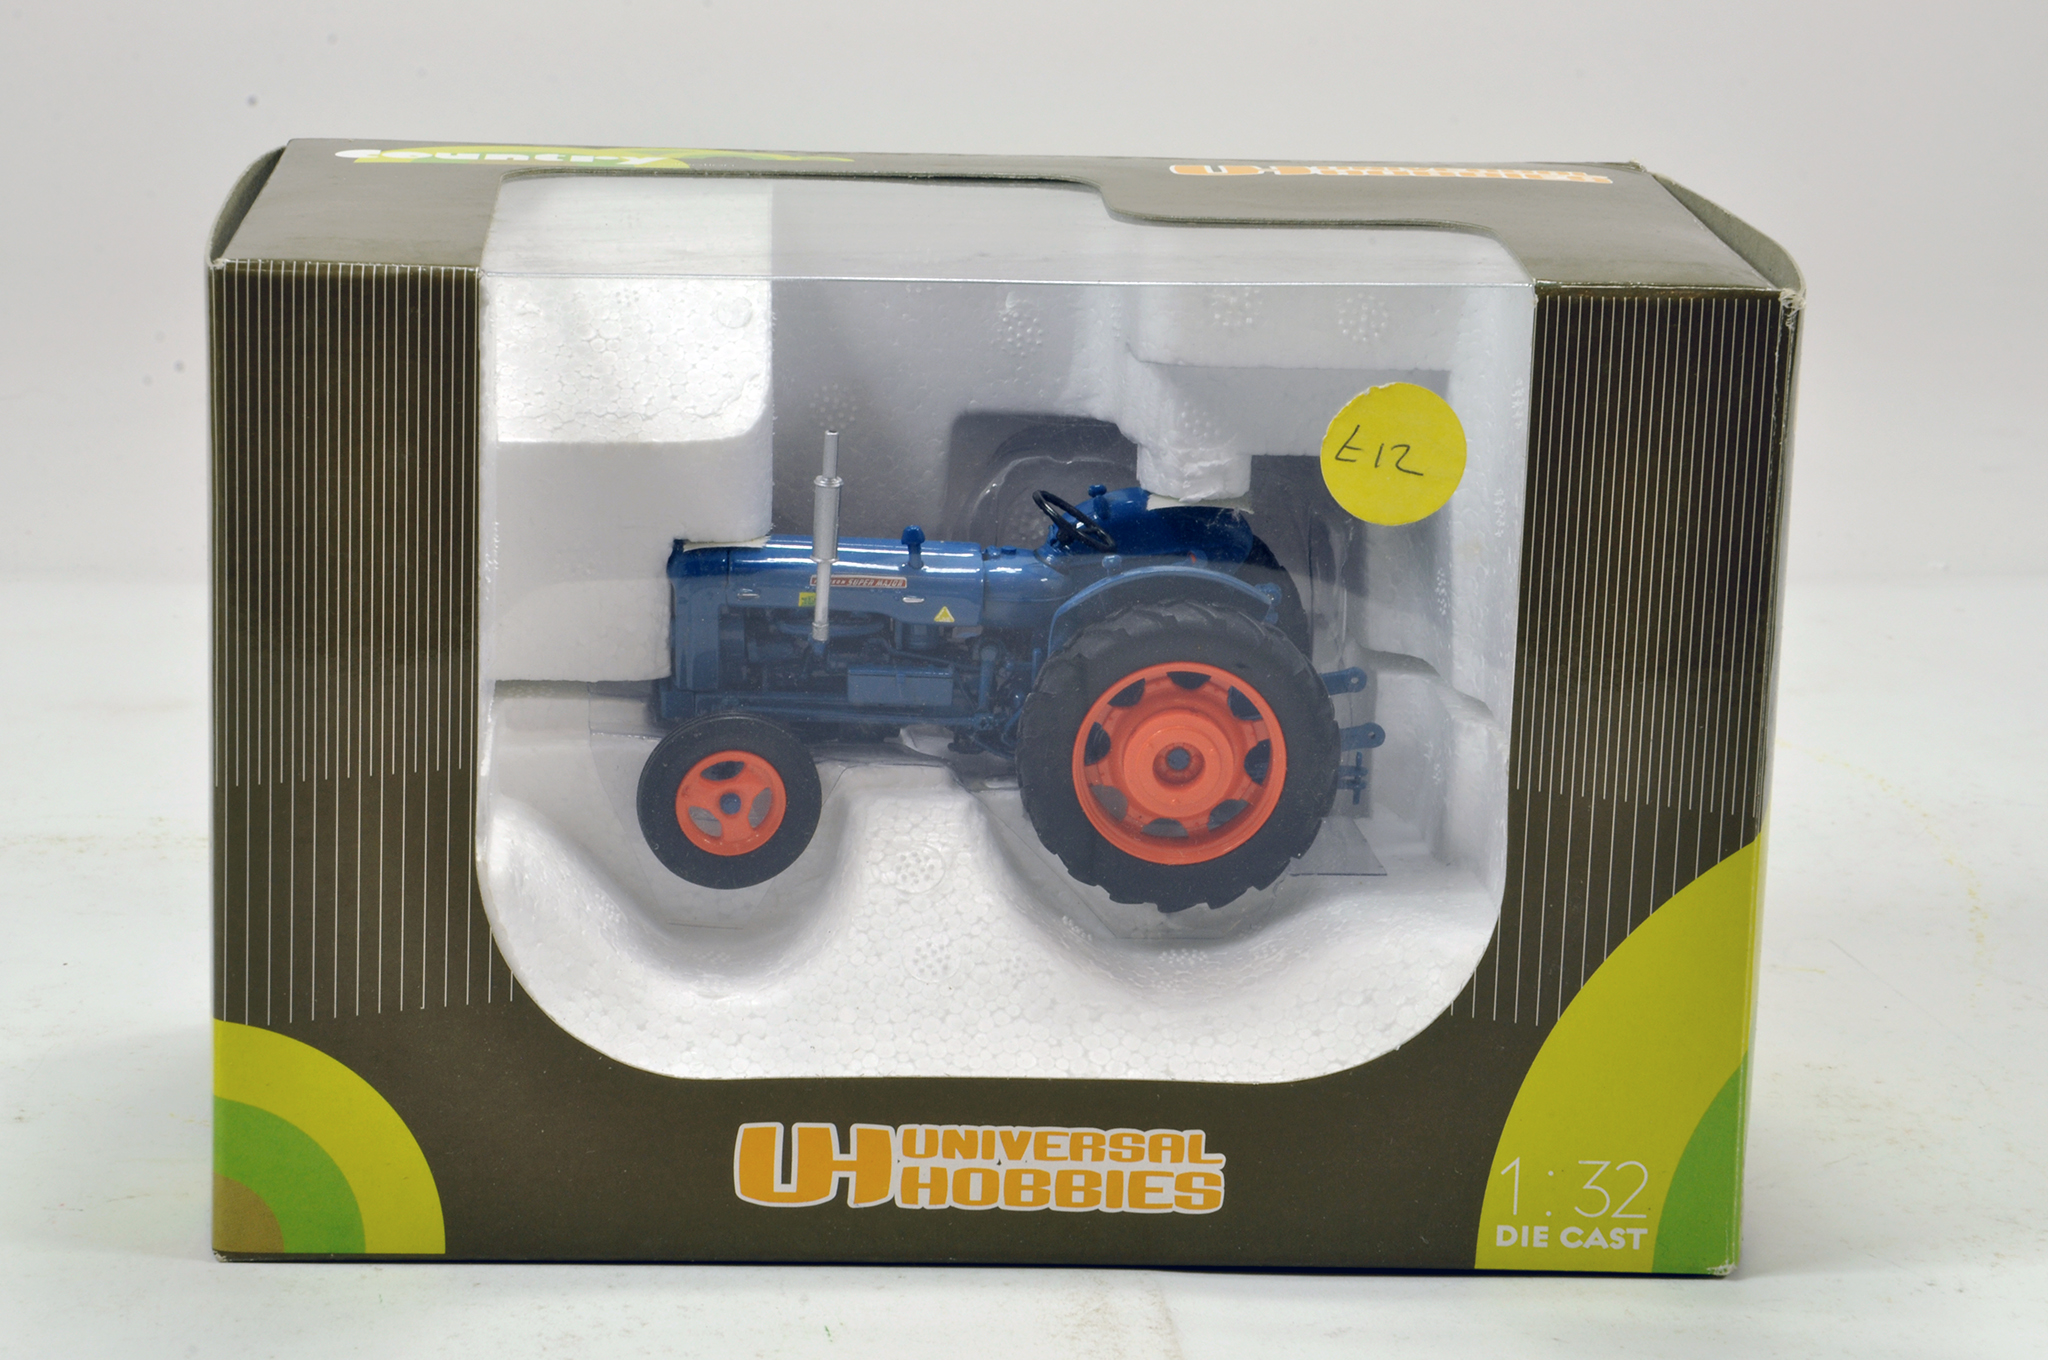 Lot 163 - Universal hobbies 1/32 Fordson Major Tractor. Generally excellent in box.